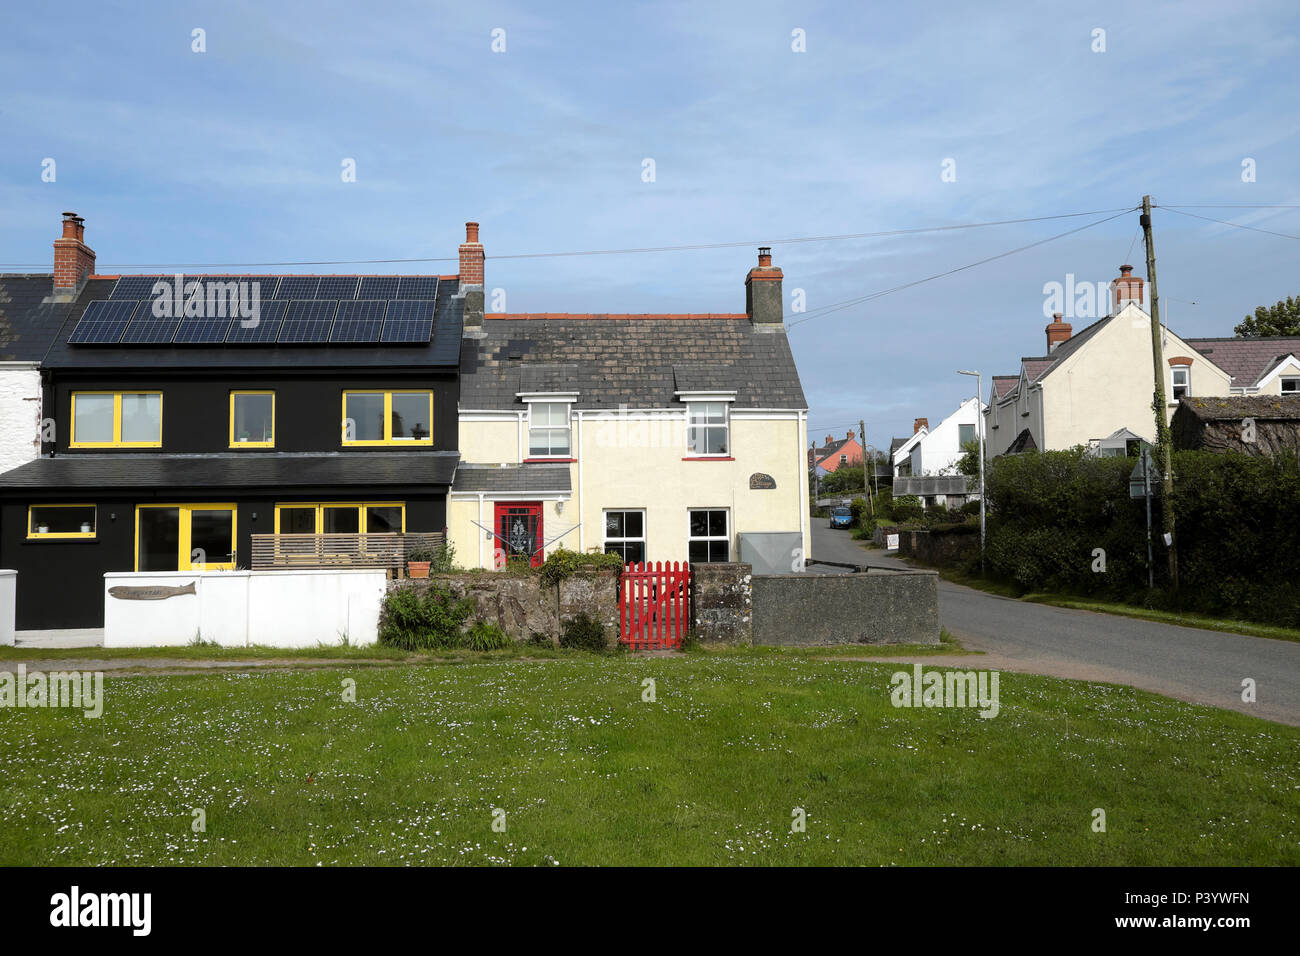 Modern house with photovoltaic cells and traditional cottage with red gate  in the village of Marloes in Pembrokeshire West Wales, UK  KATHY DEWITT - Stock Image